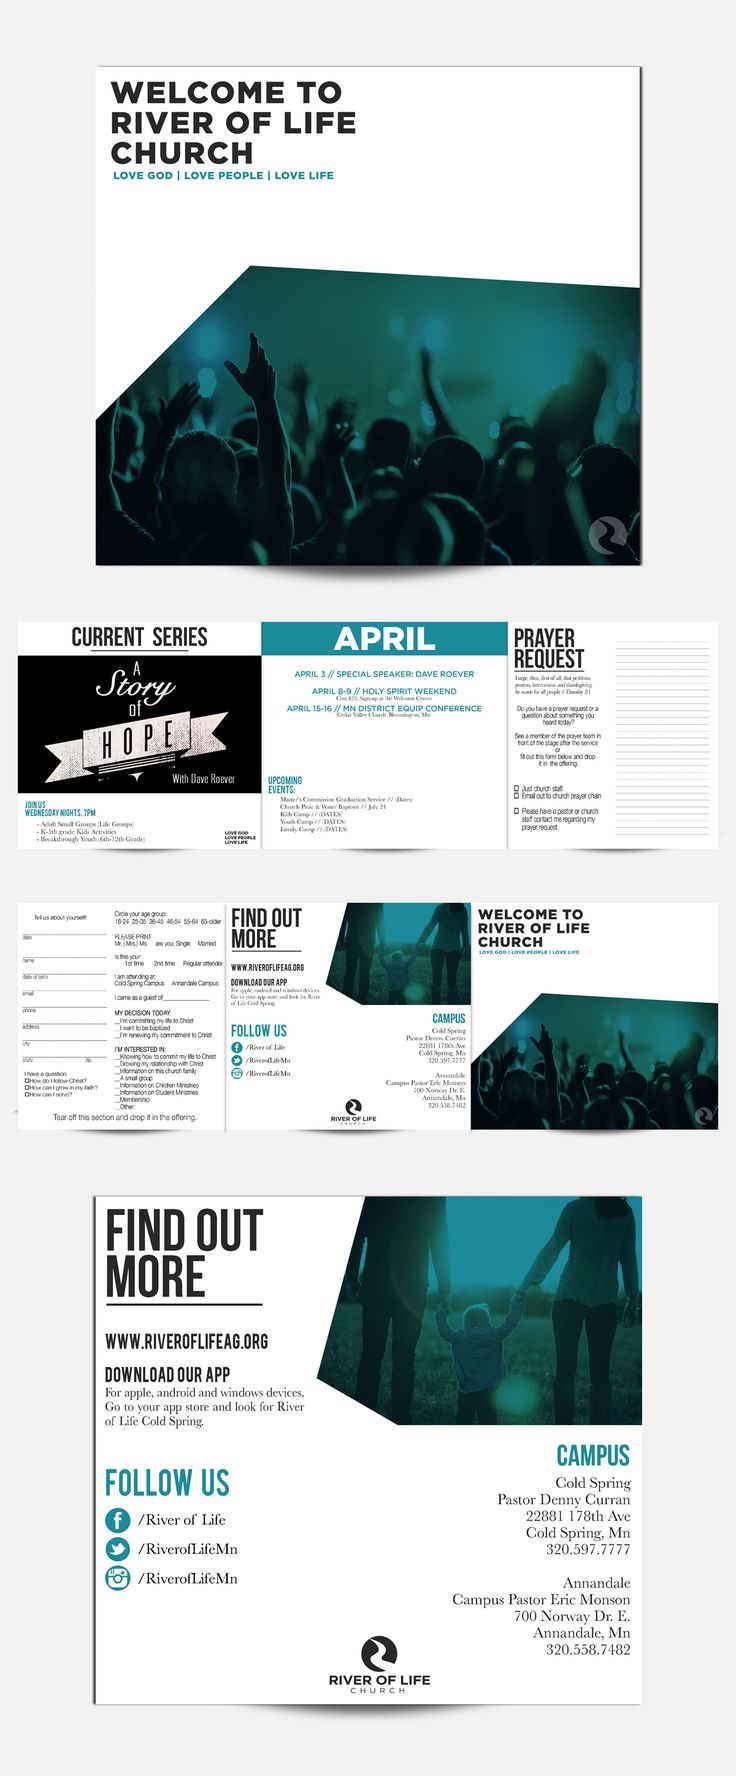 Church Bulletin done by 320 Creative for River of Life Church in Cold Spring, MN